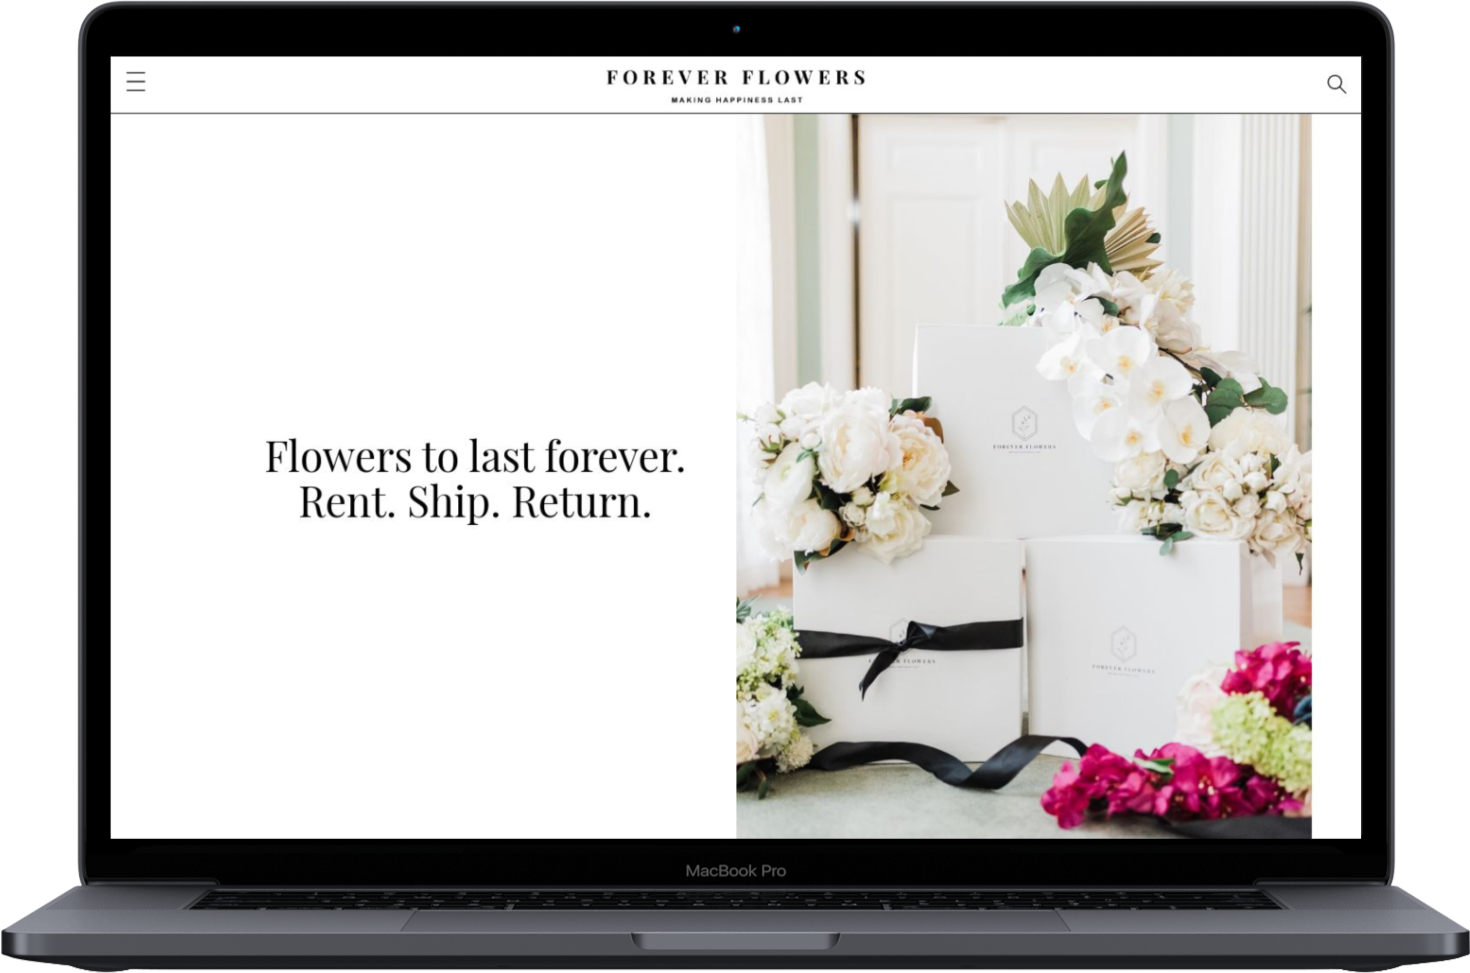 A Macbook Pro Mockup with the Forever Flowers Delivery Website